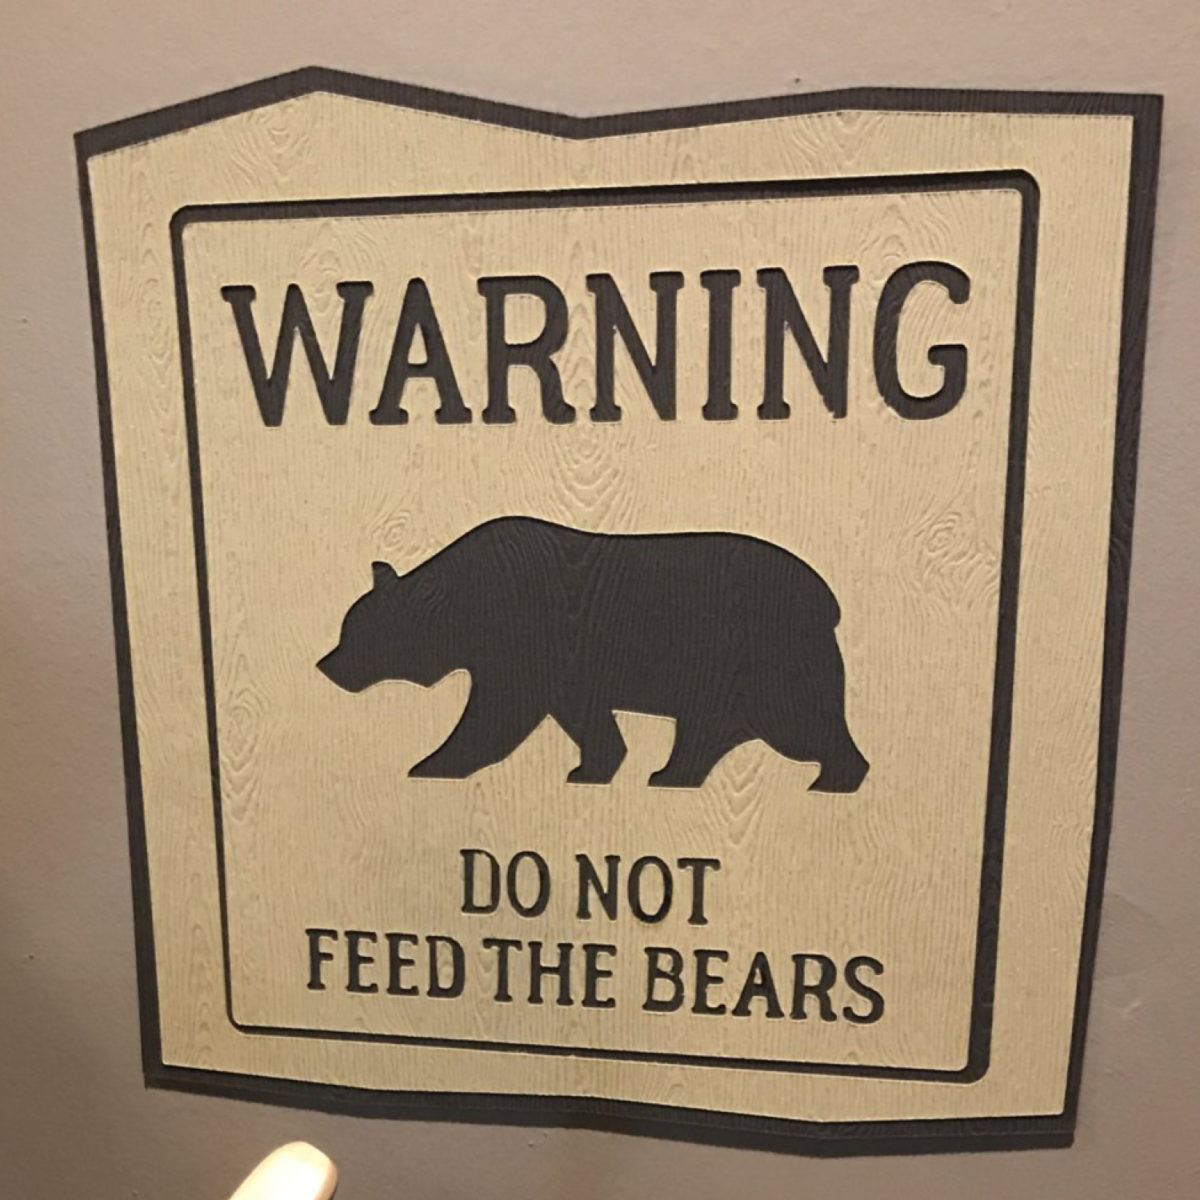 Warning do not feed the bears sign | by Posted Fete